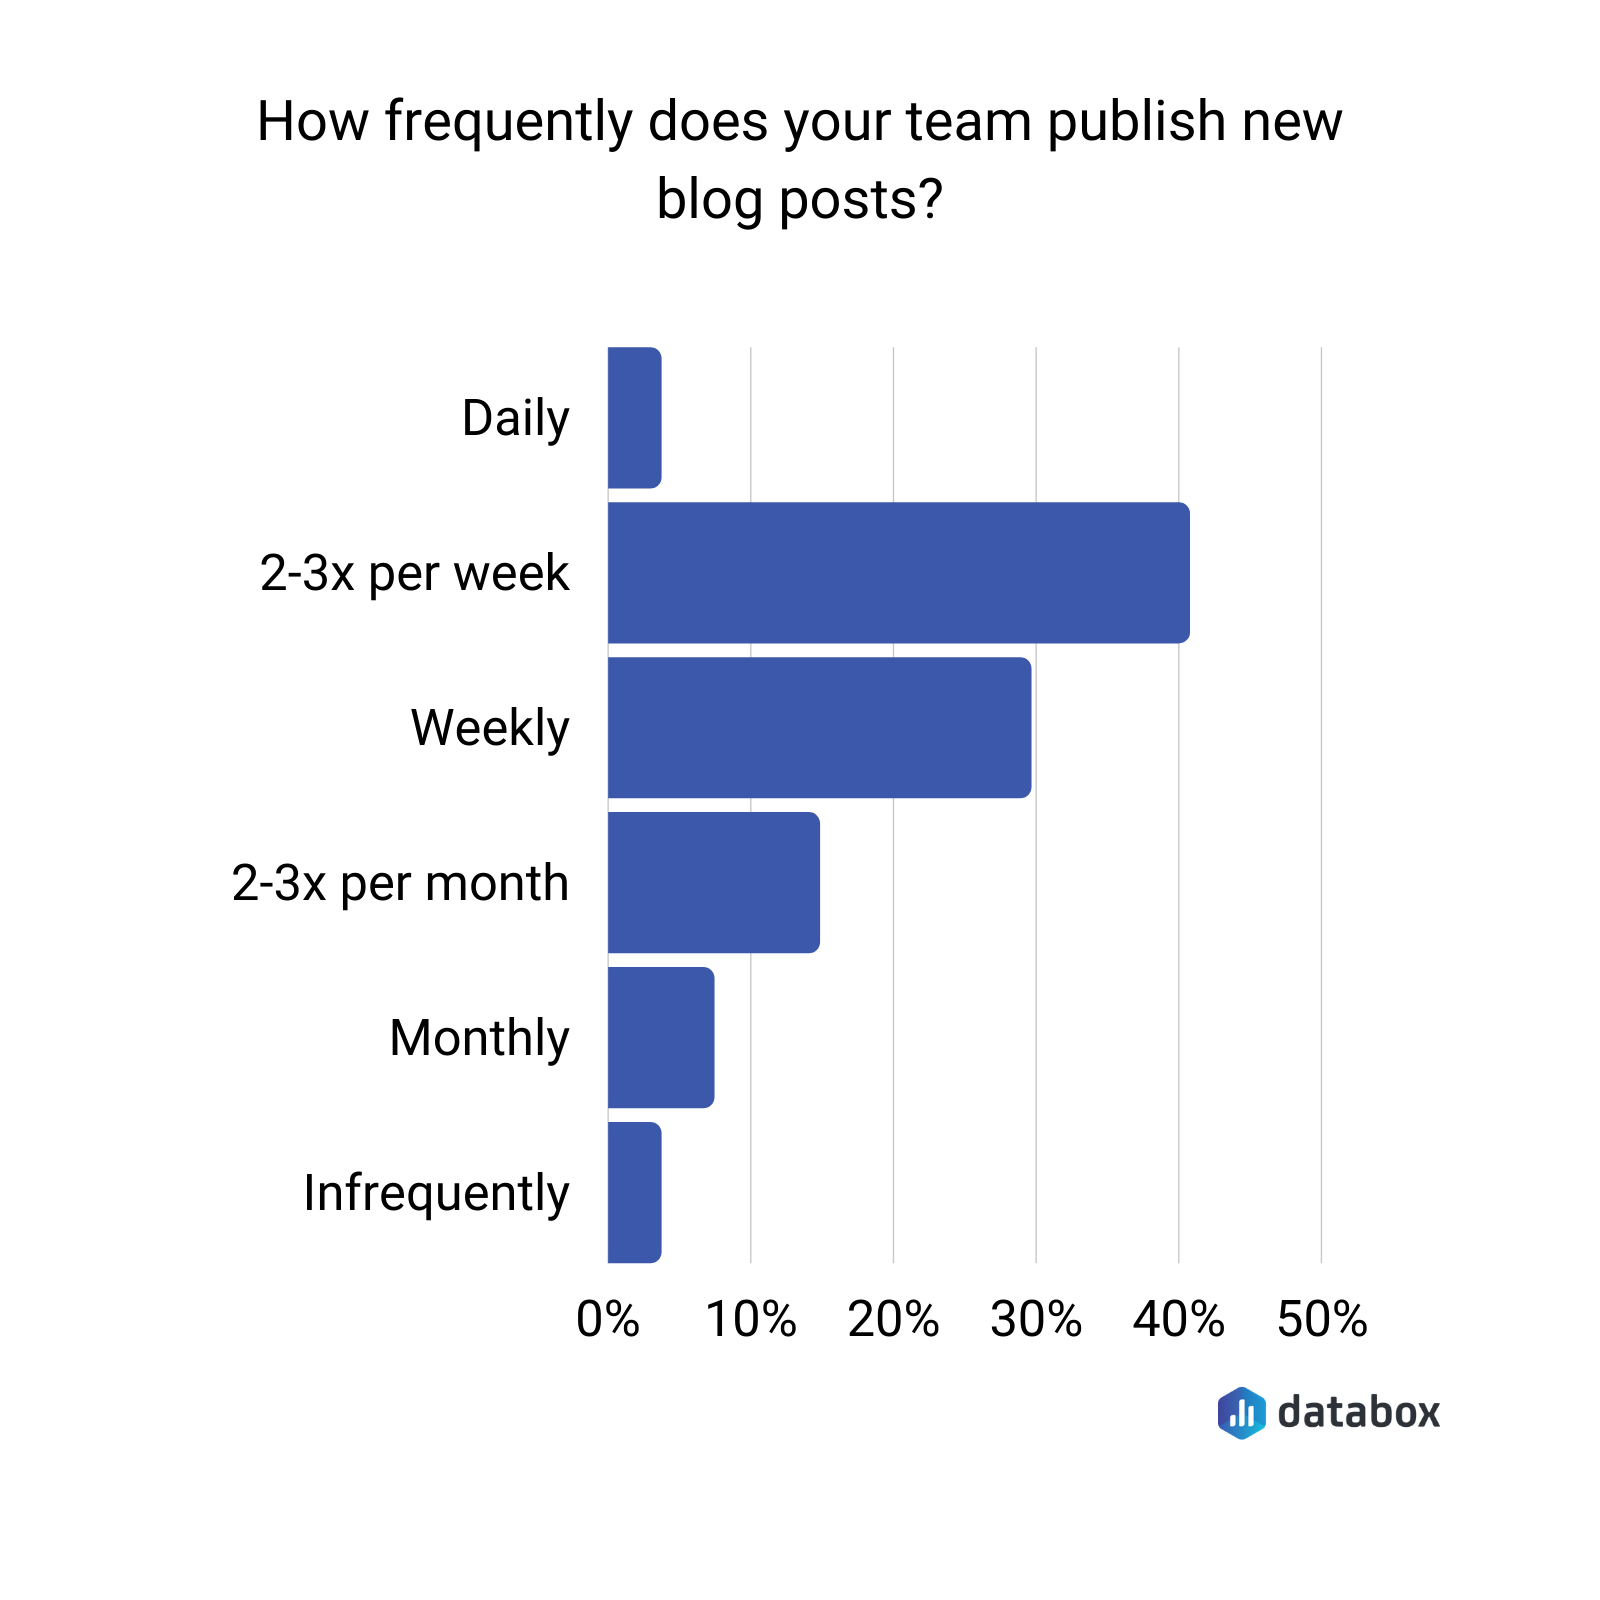 how frequently does your team publish new blog posts?